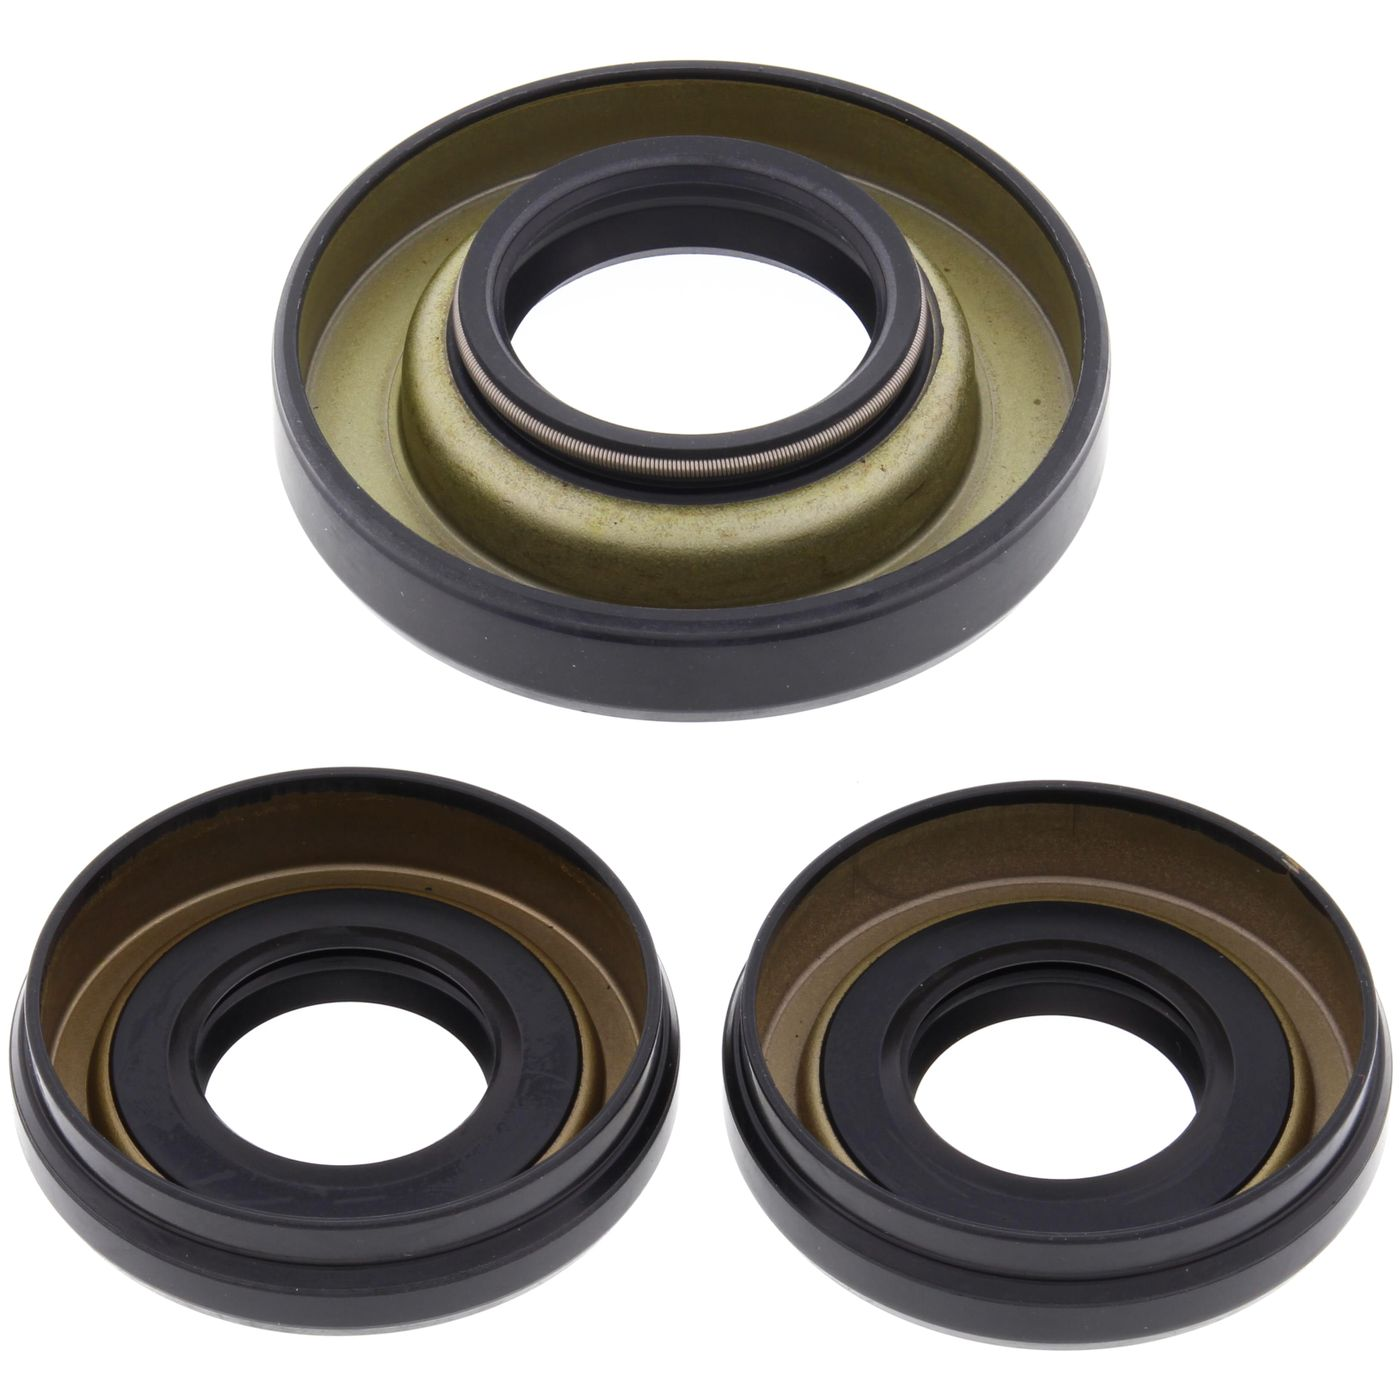 Wrp Diff Seal Kits - WRP252003-5 image